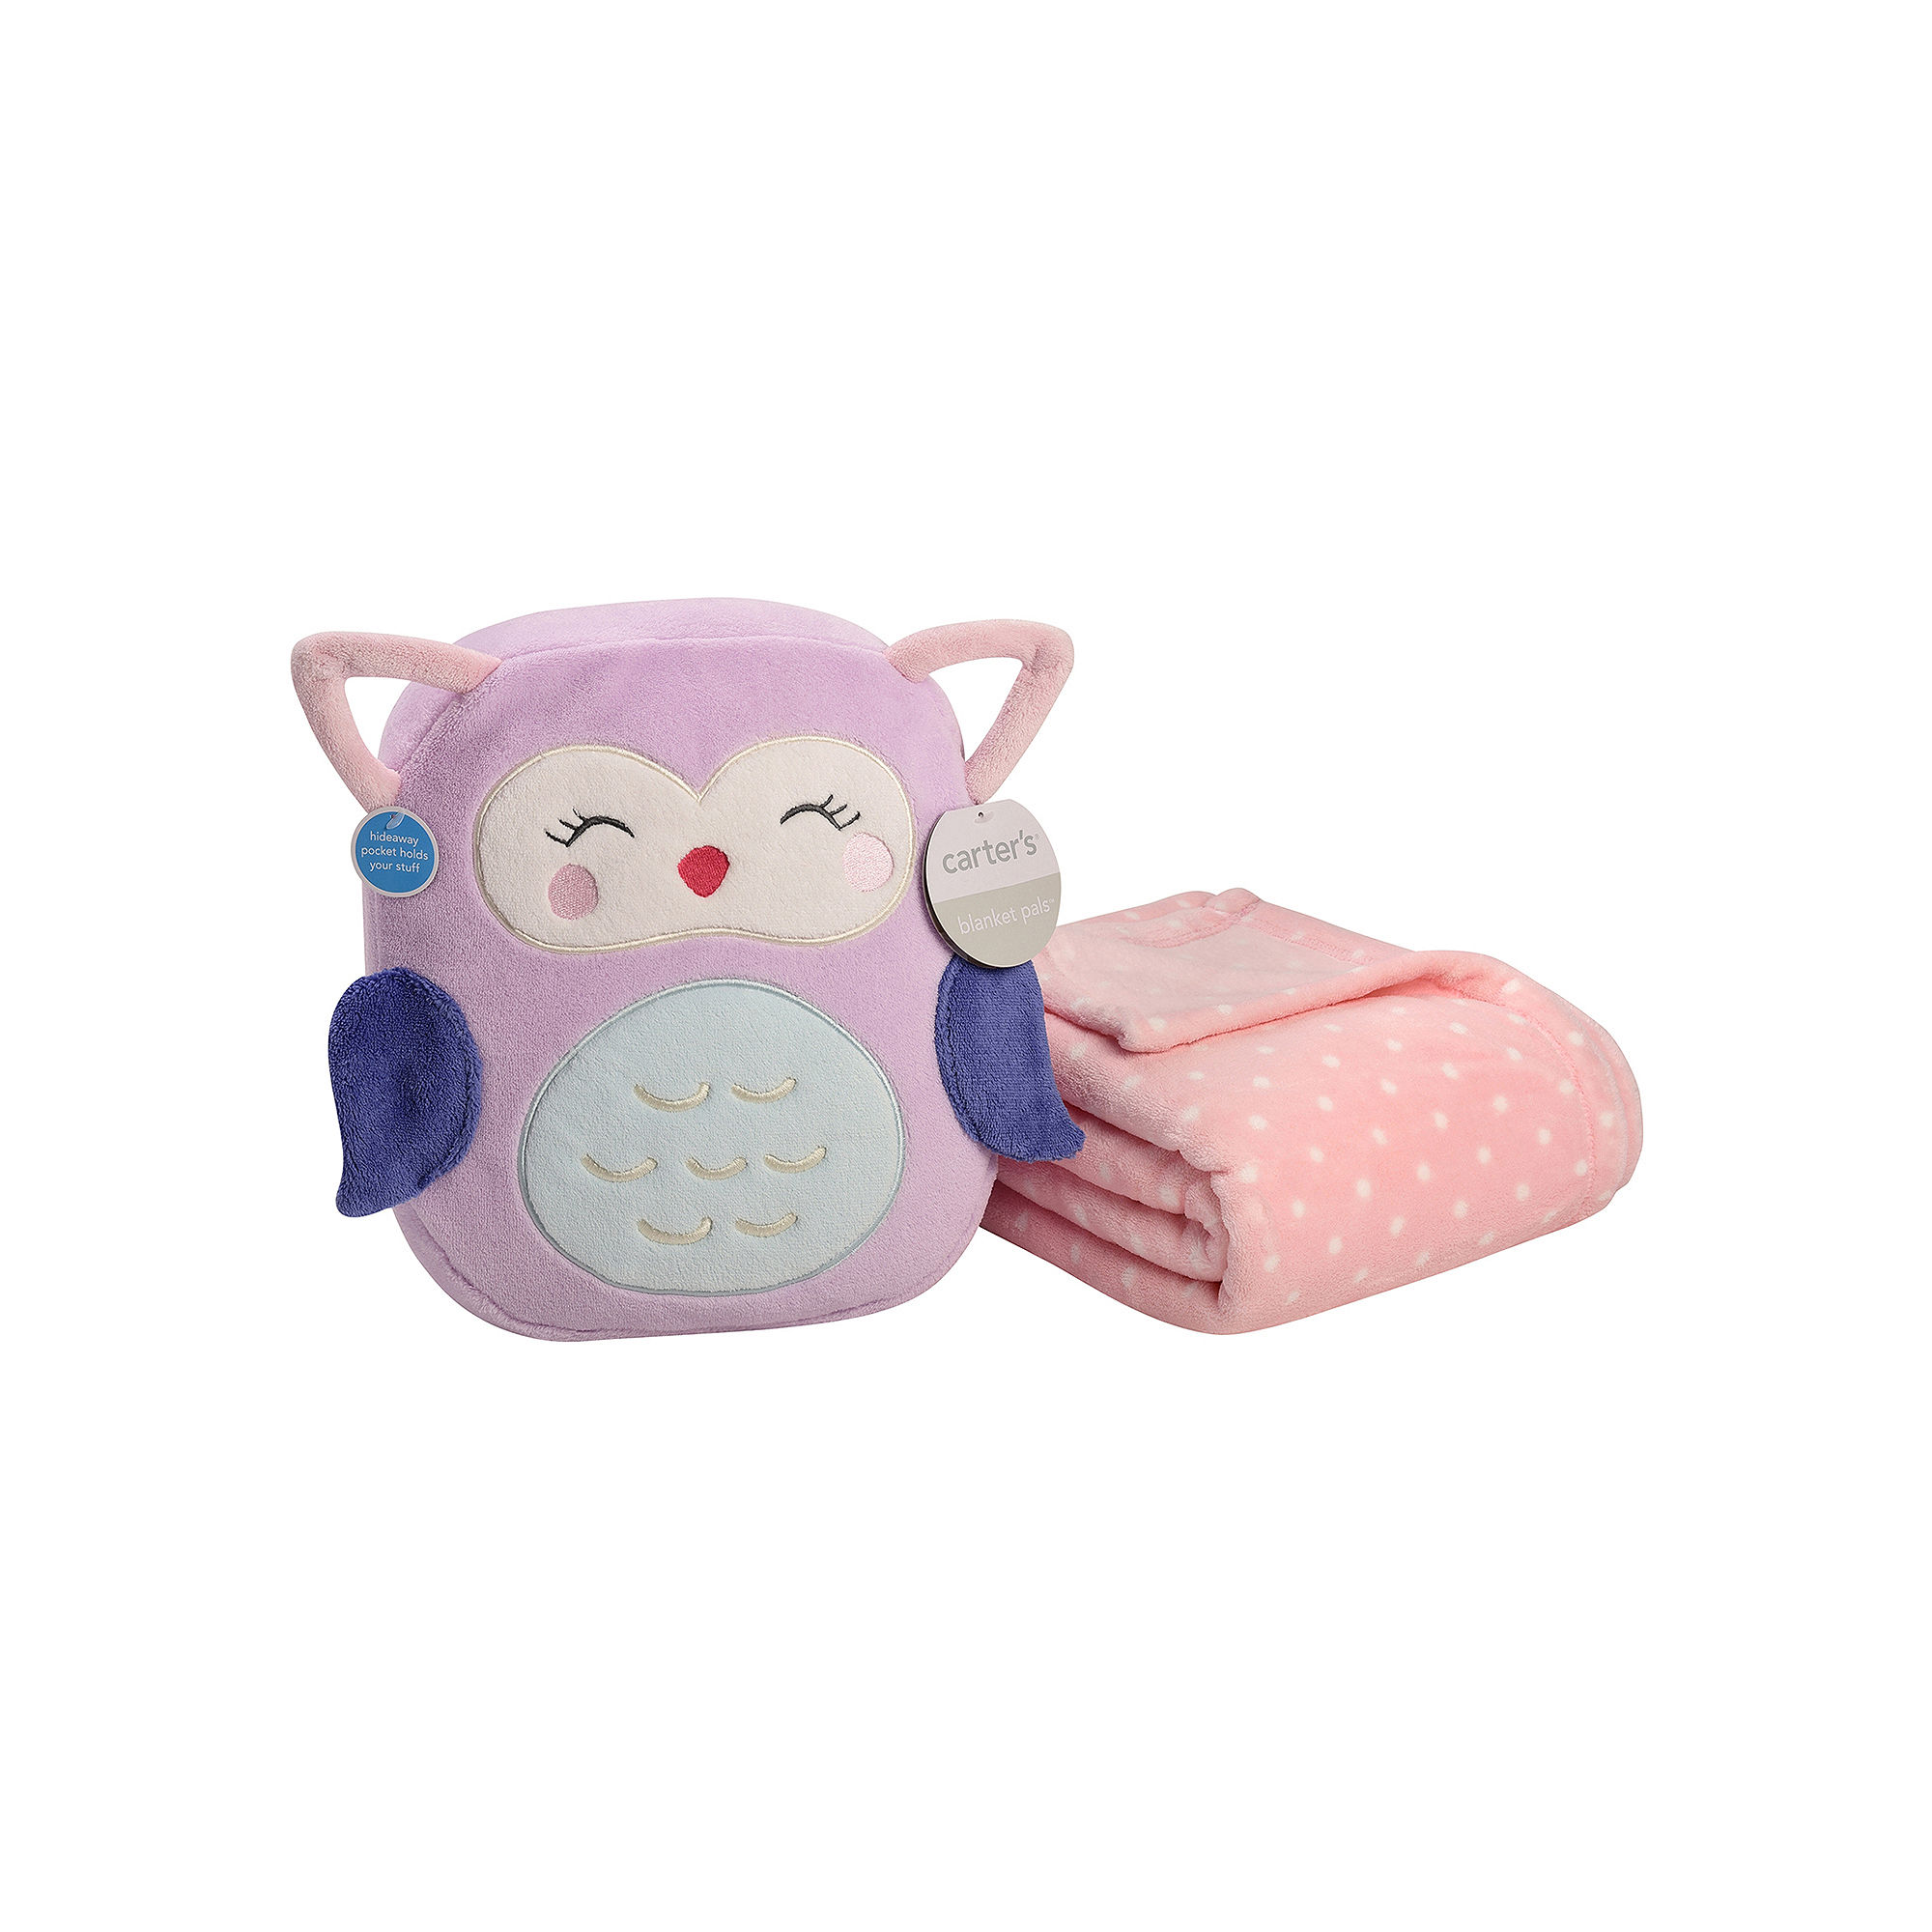 Carter's On-the-Go Owl Plush Bag with Blanket